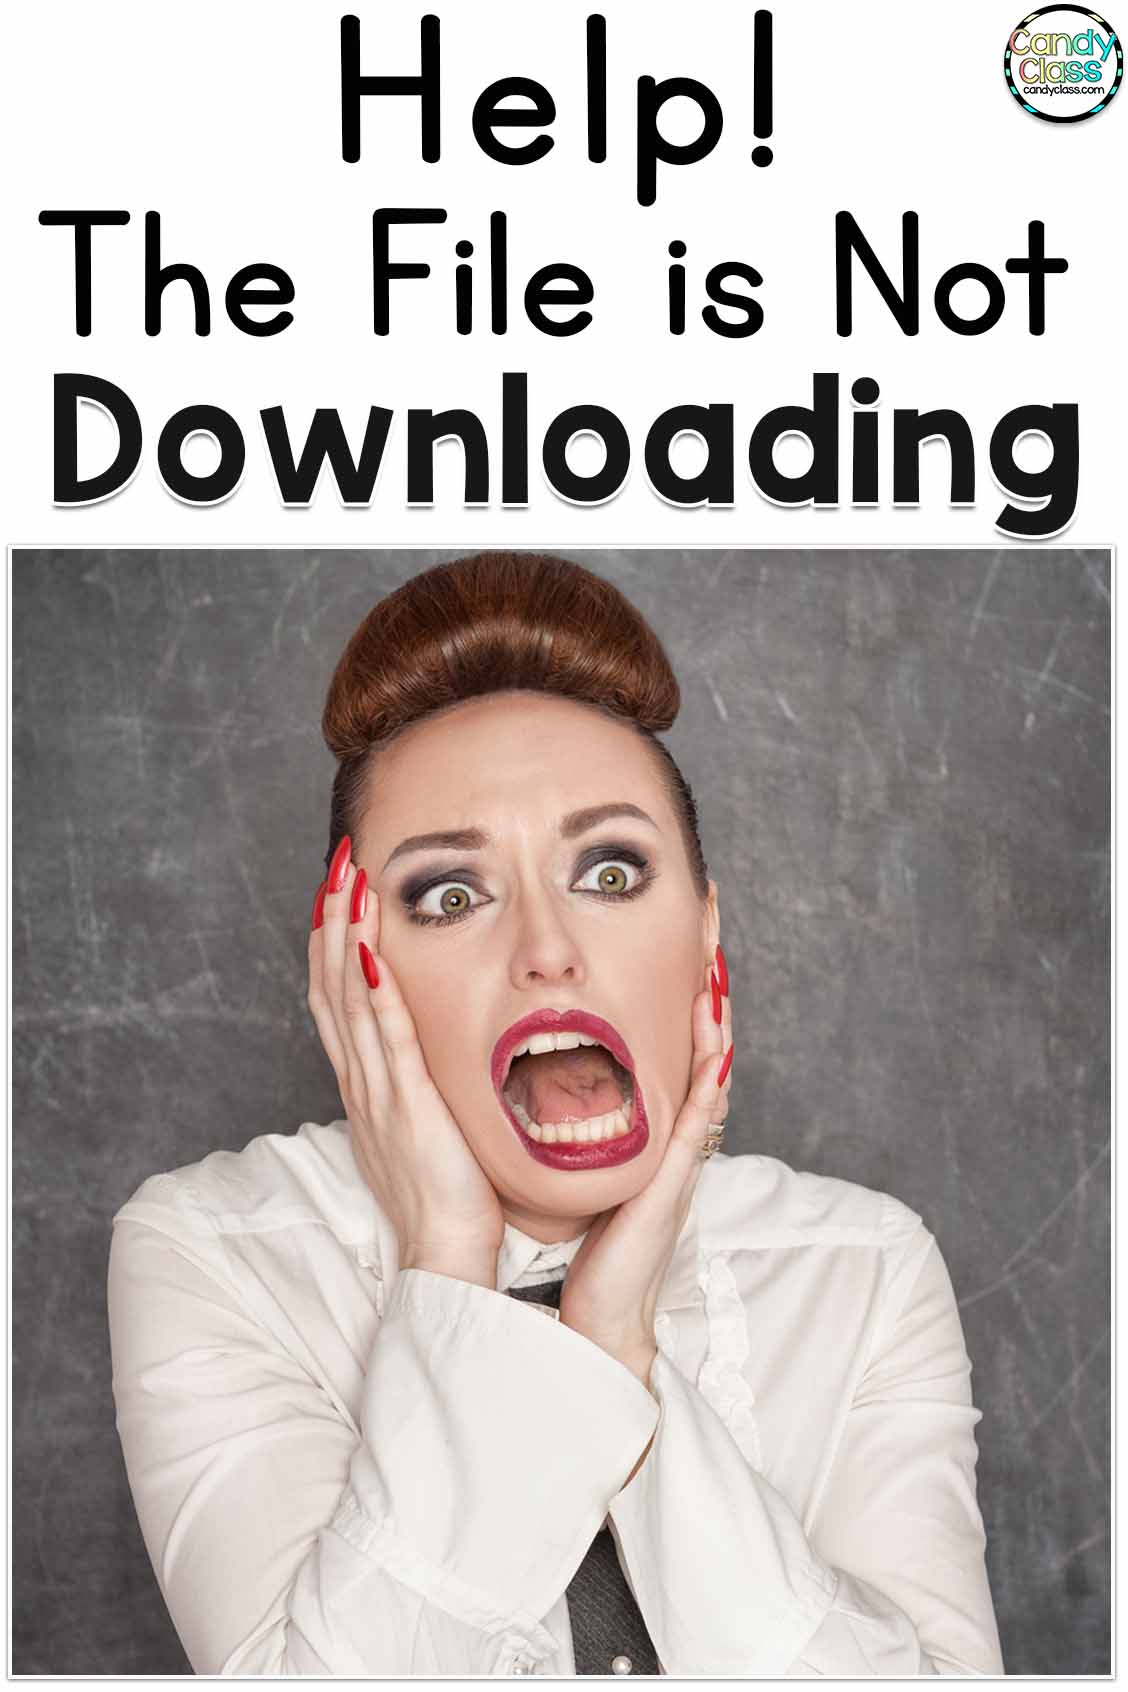 Help! The File is Not Downloading